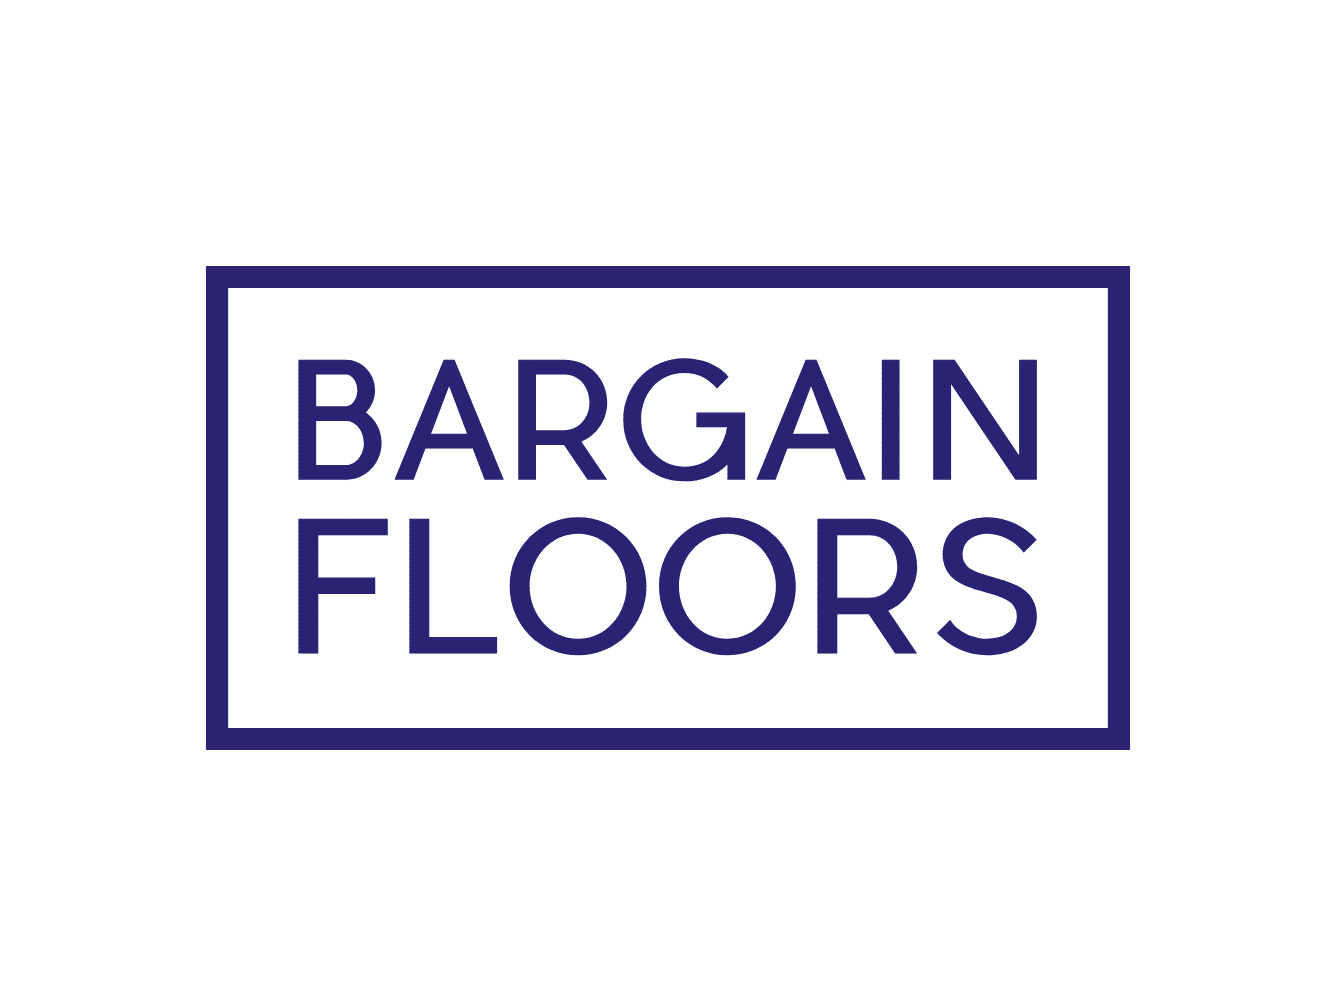 Bargain Floors